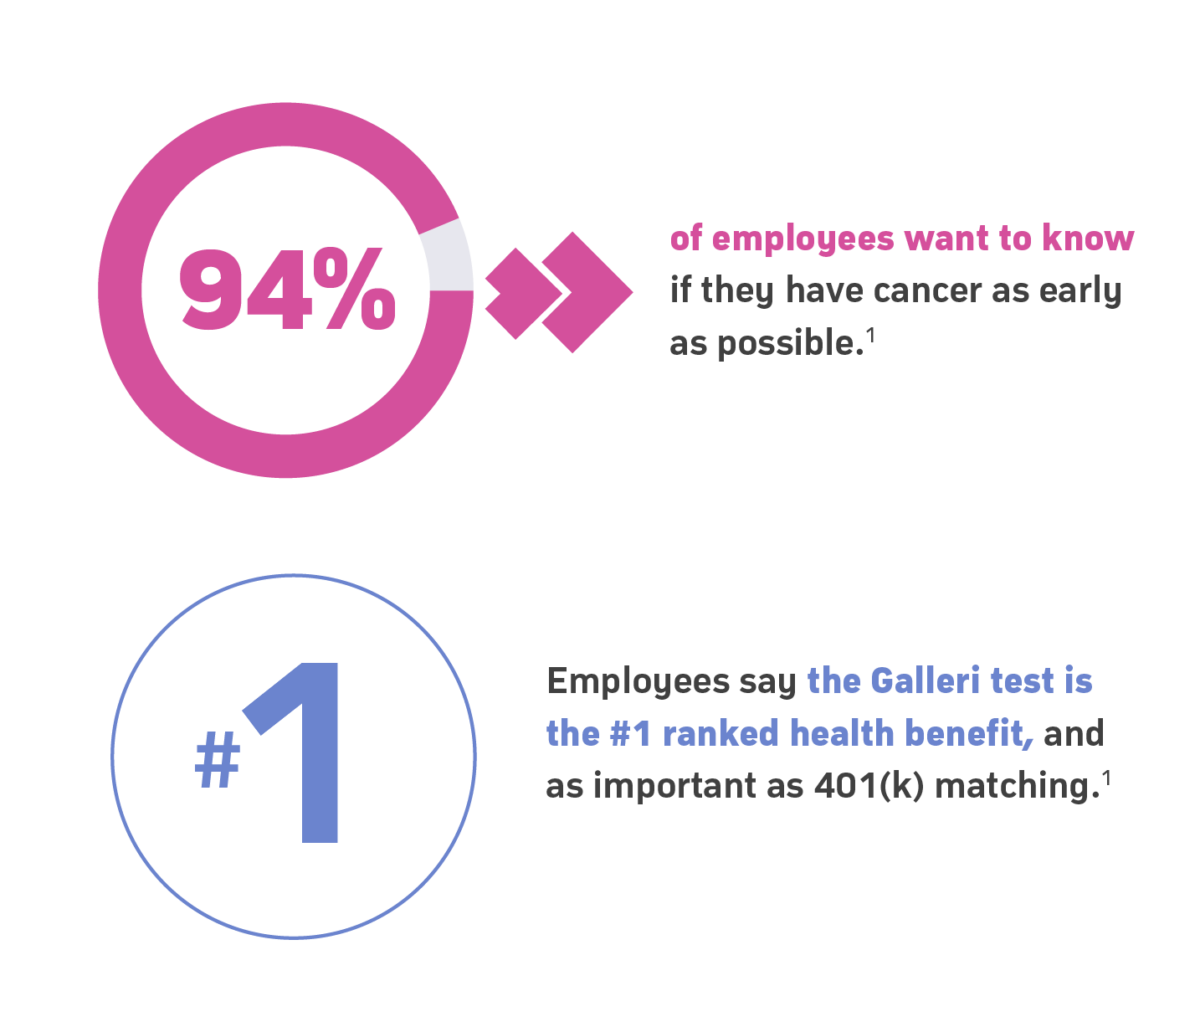 Employees say the Galleri test is the #1 ranked health benefit